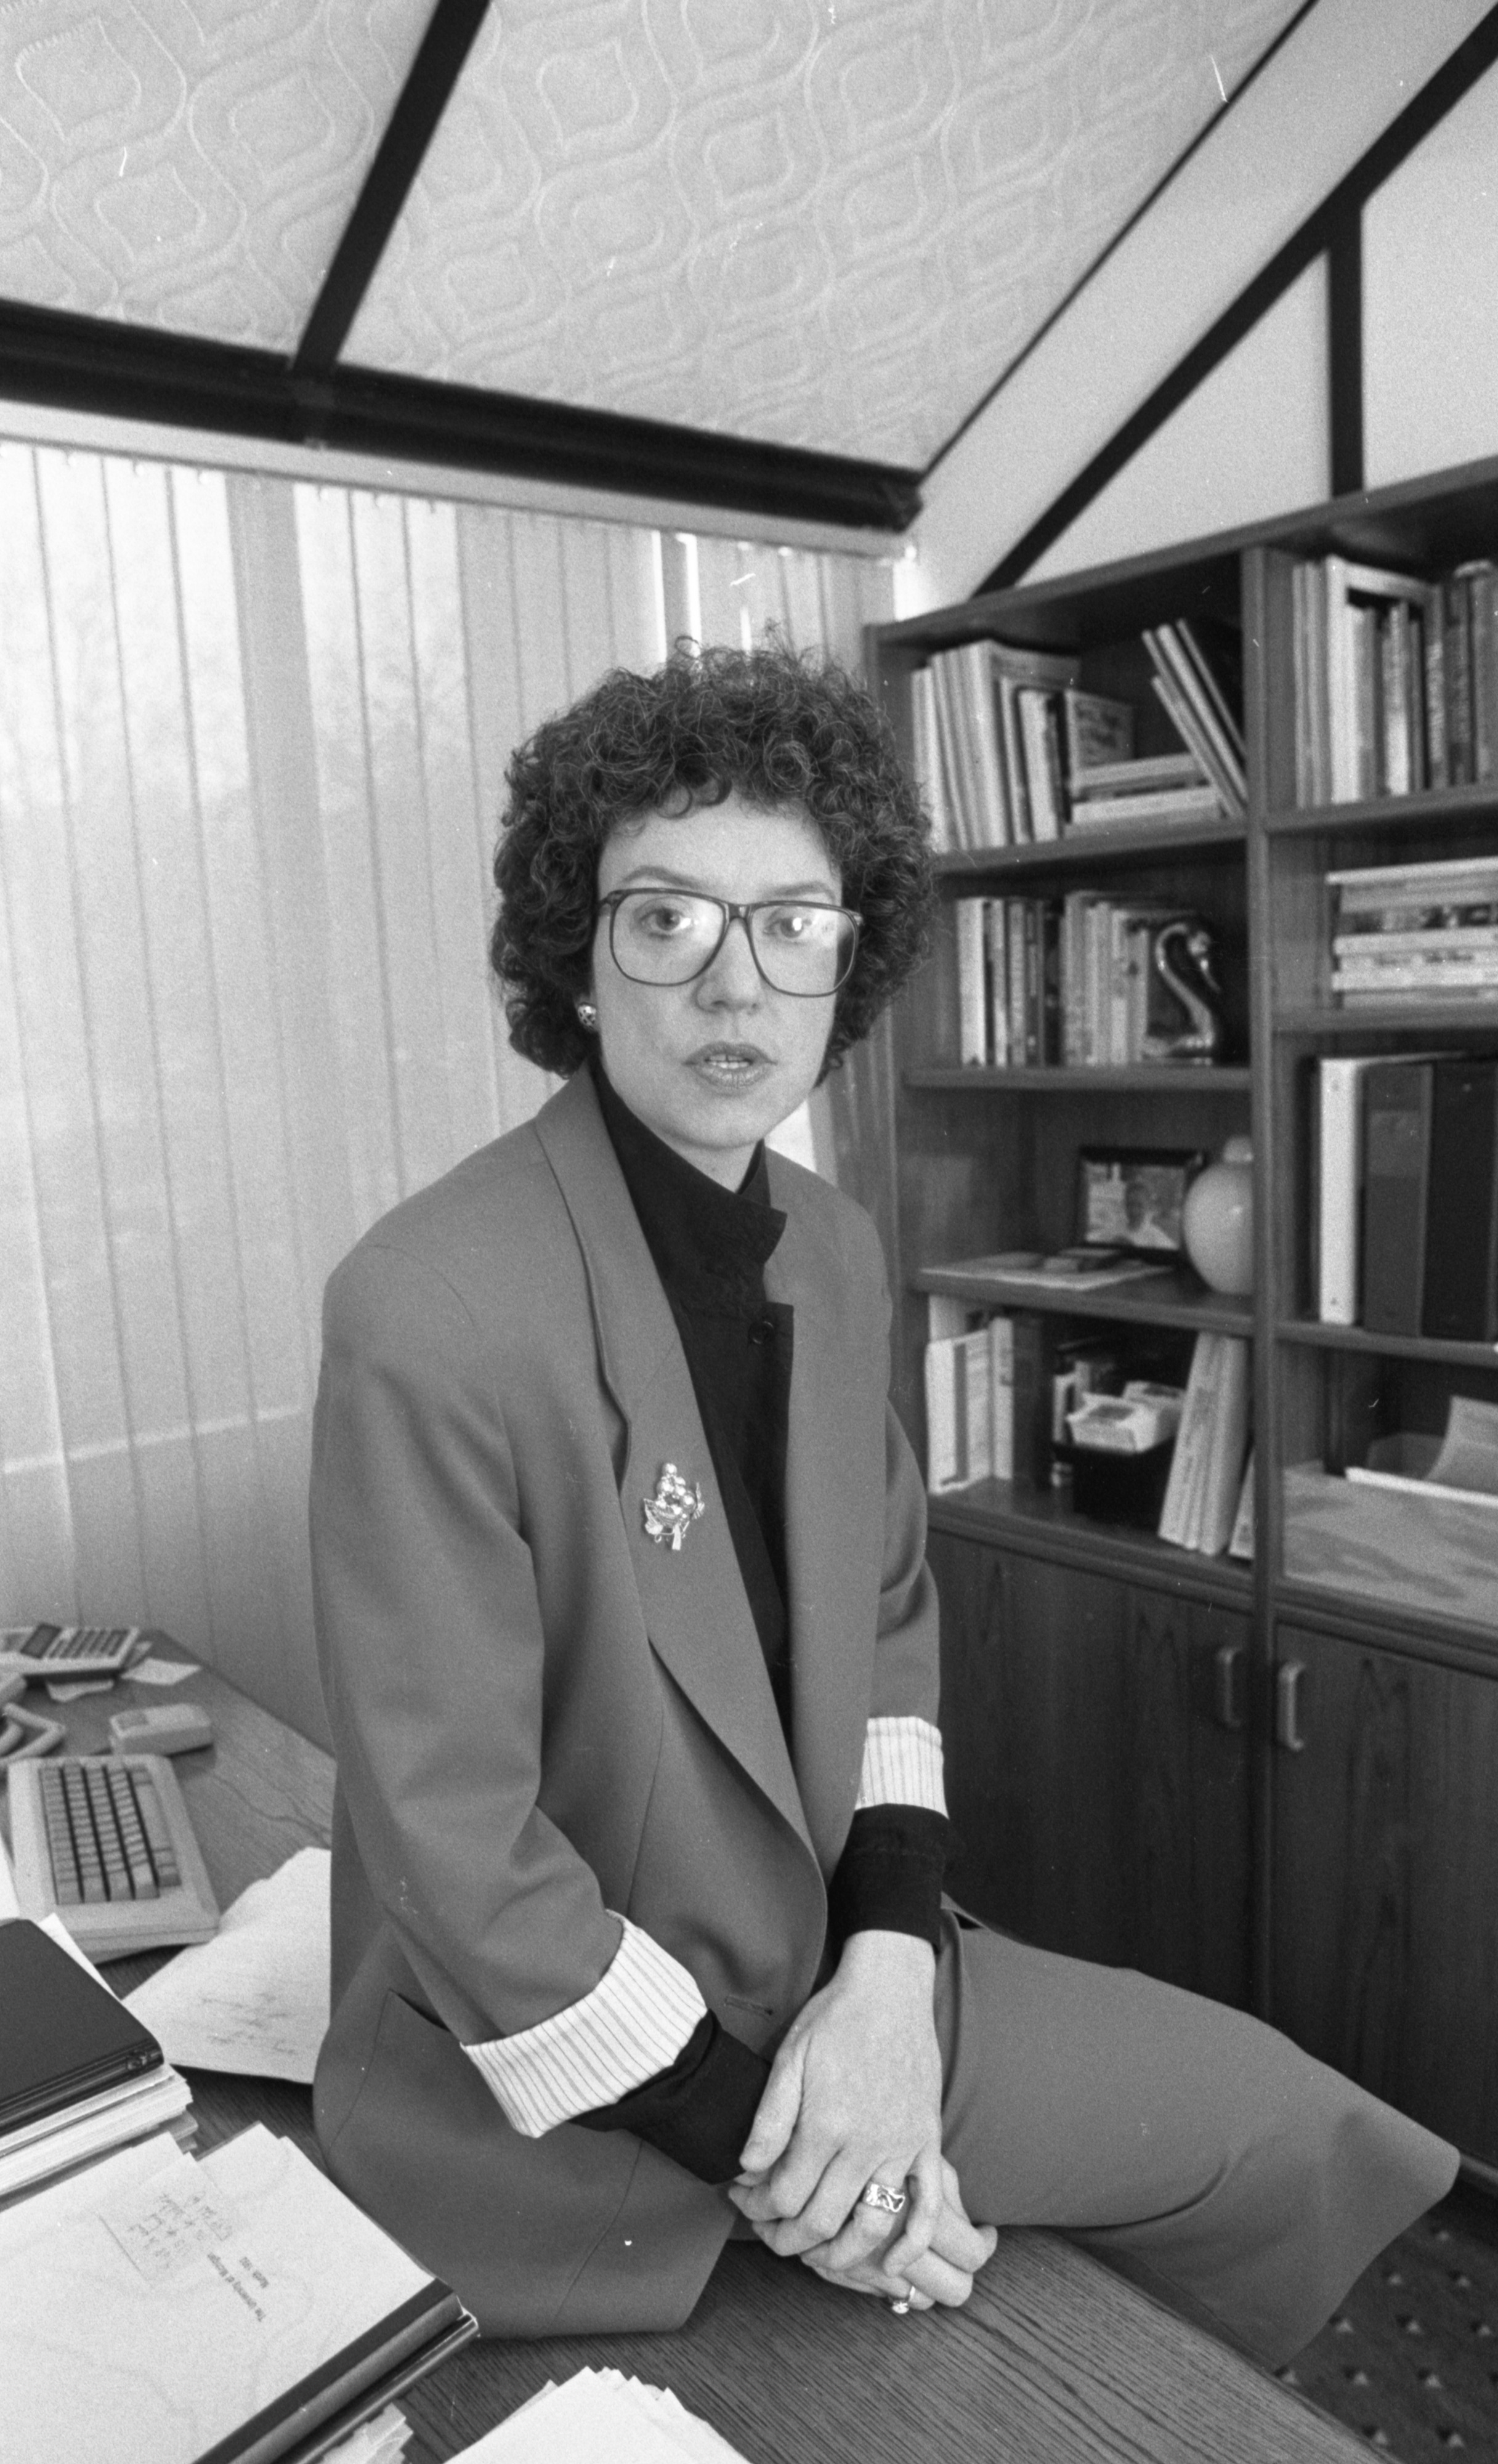 Carol S. Hollenshead - Director Of Center For The Education Of Women, April 1992 image